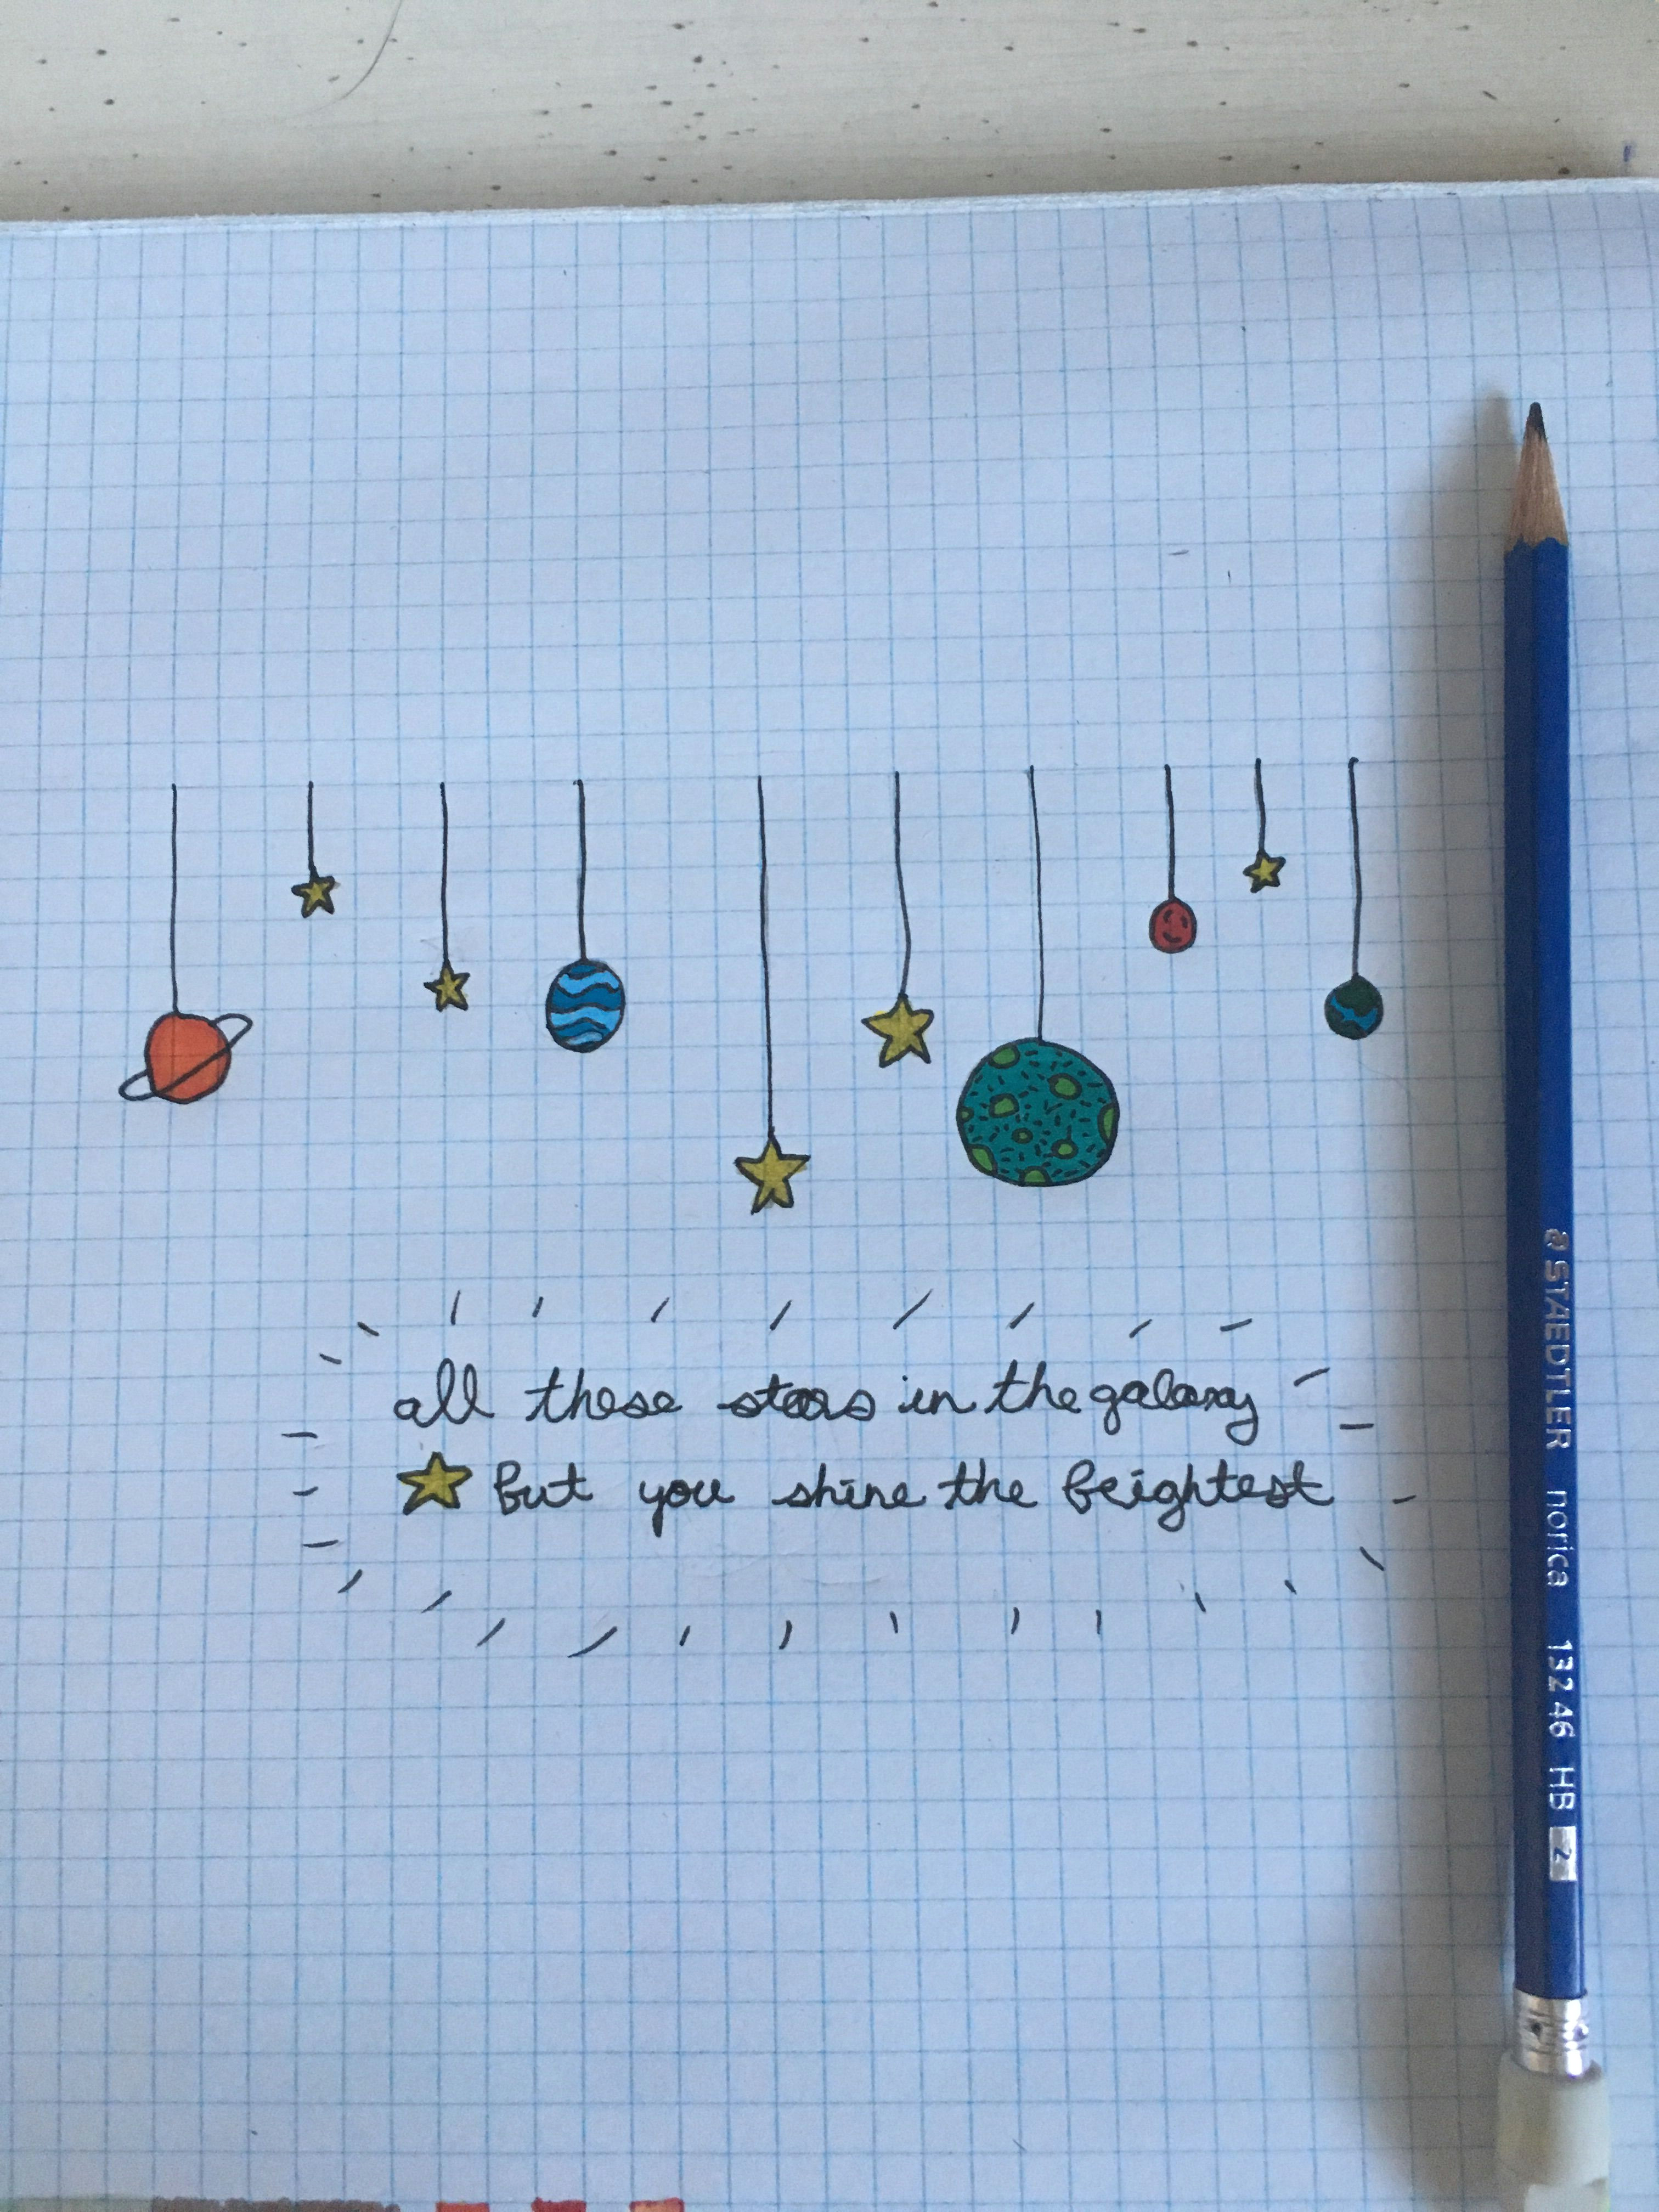 i drew some planet and decided to add some words at the bottom i really